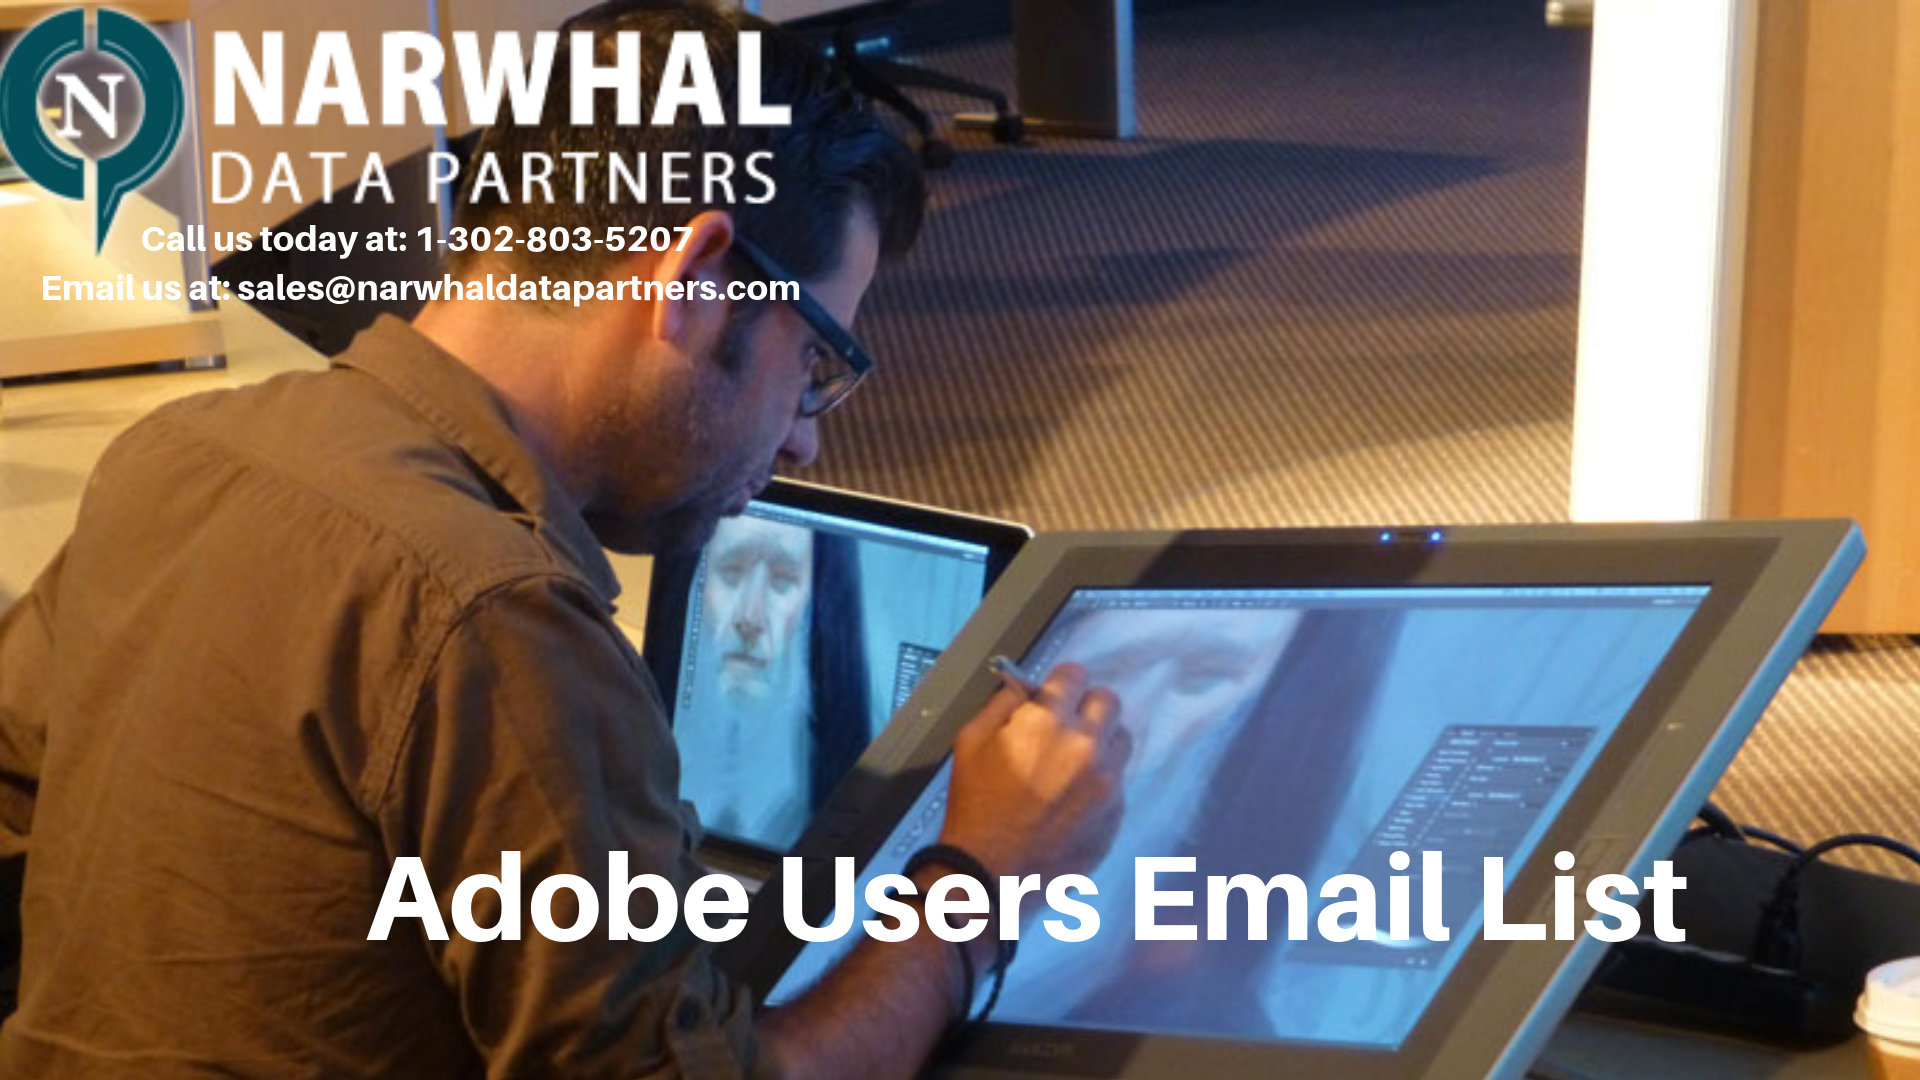 http://narwhaldatapartners.com/adobe-users-email-list.html